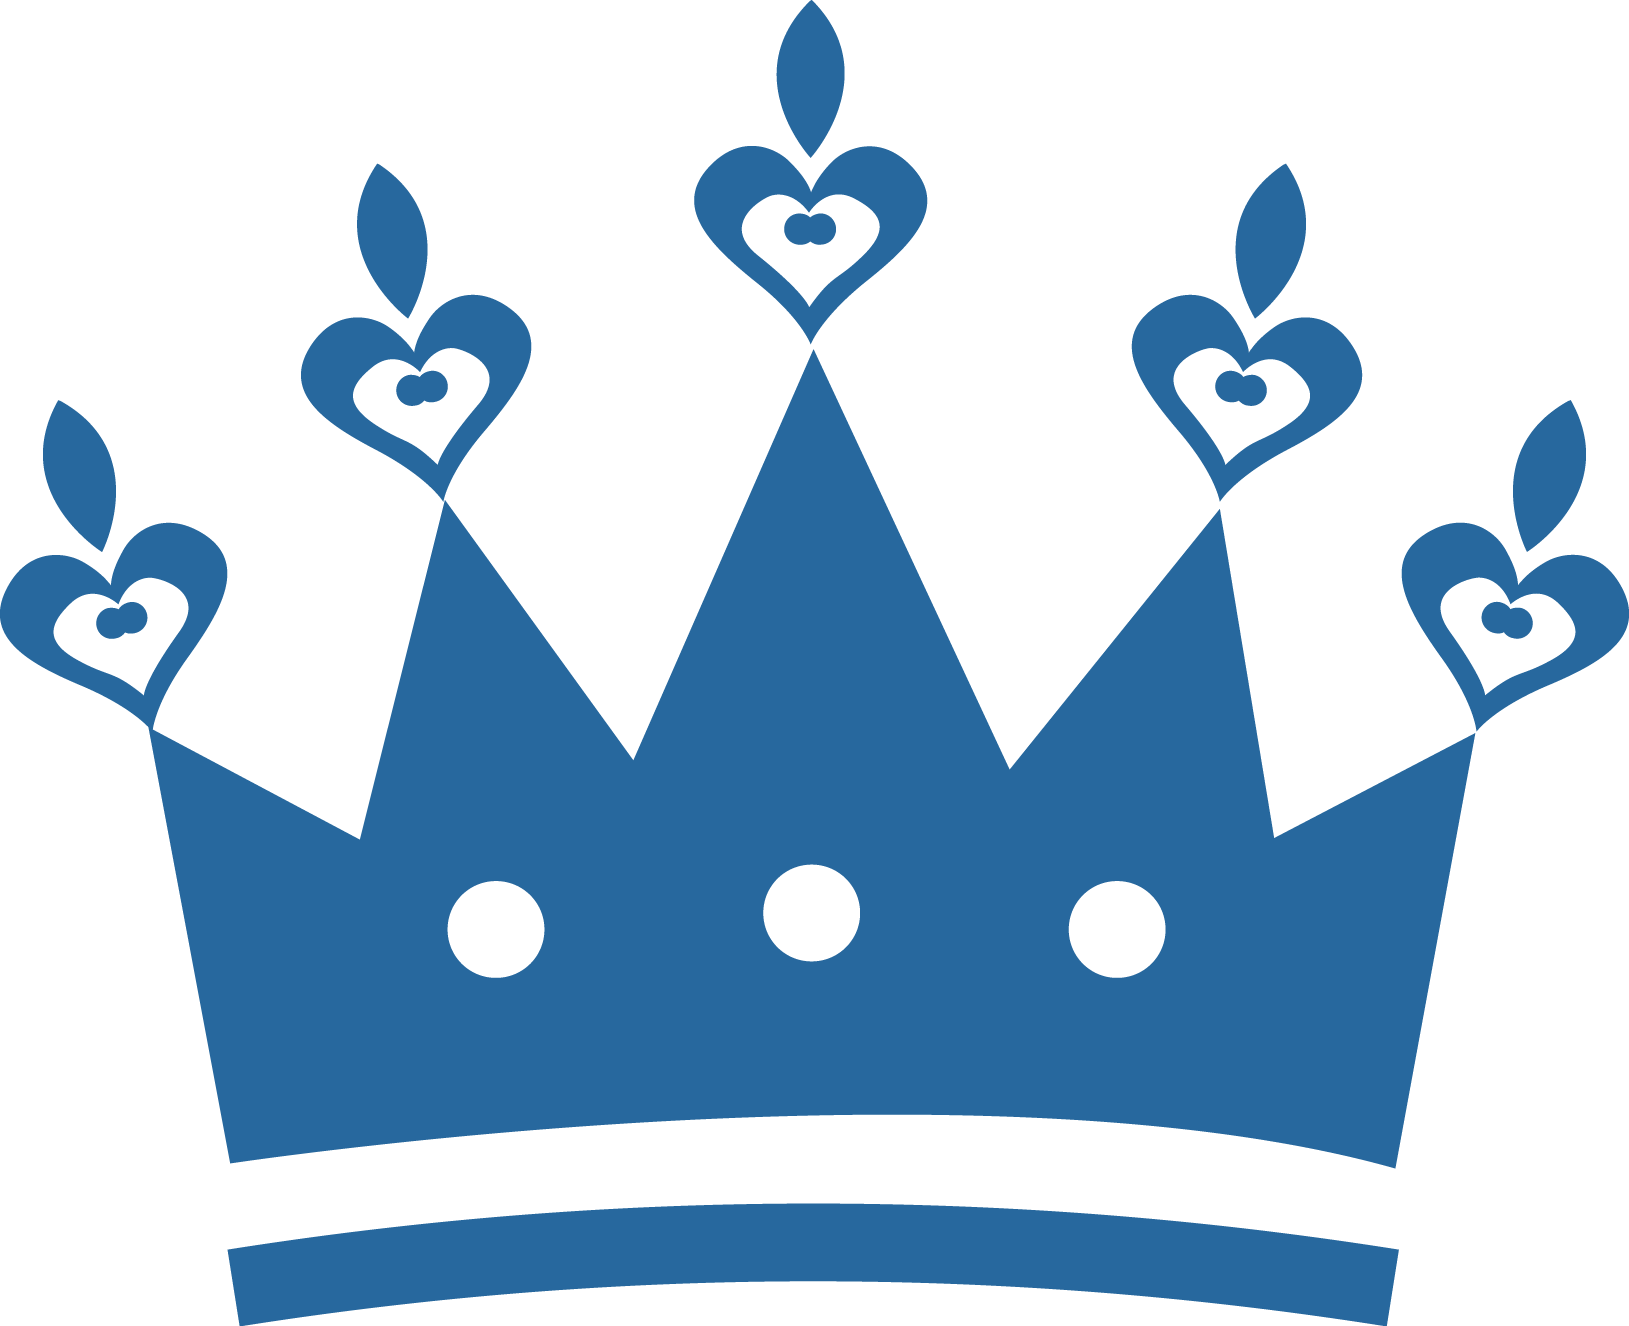 clip art download Mr clipart crowning. Ch b ilustra es